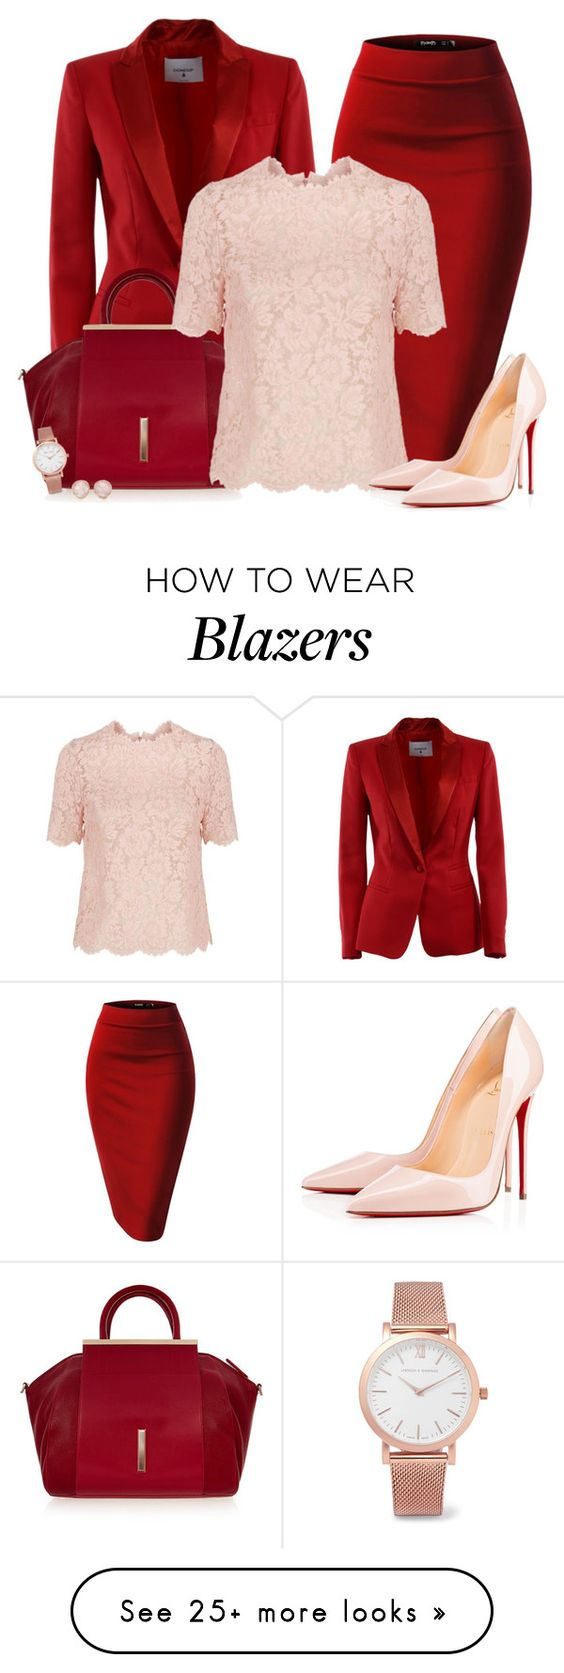 """Bottom Series 5/6: Pencil Skirt *OUTFIT ONLY!* - Contest!"" by asia-12 on Polyvore featuring Dondup, Raoul, Valentino, Christian Louboutin, Larsson & Jennings and Monica Vinader"